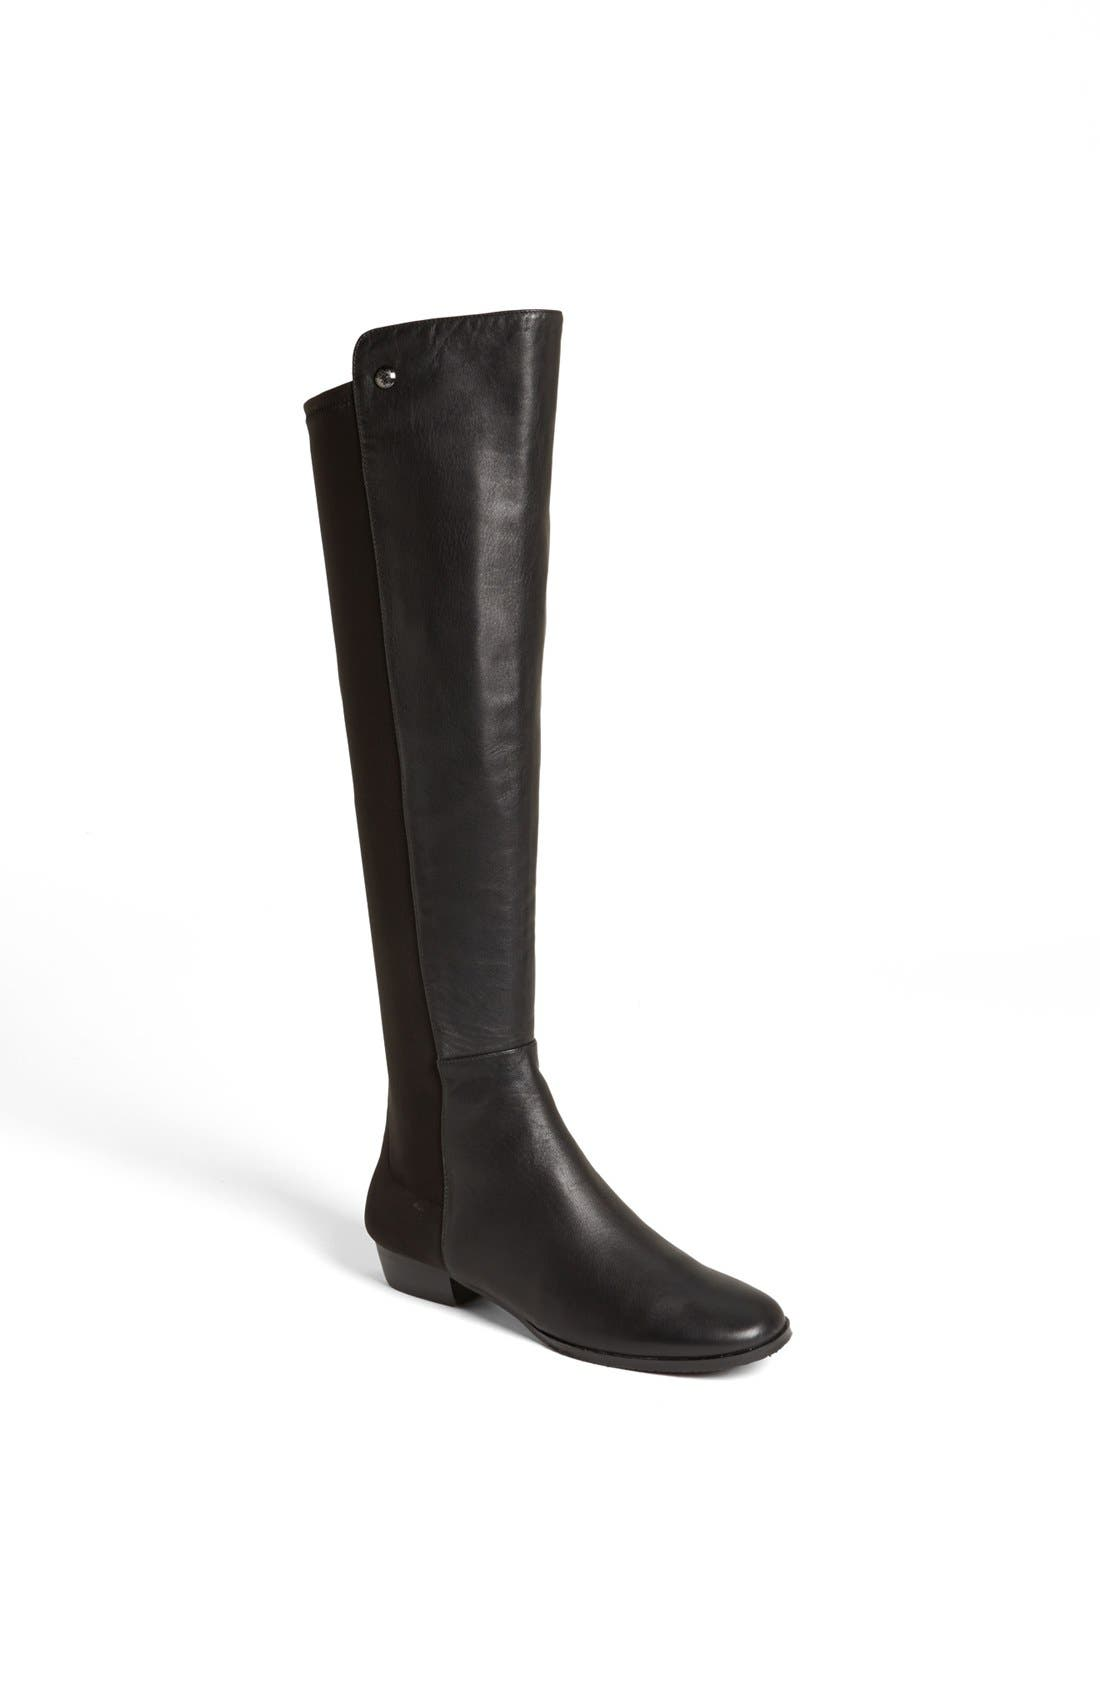 Alternate Image 1 Selected - Vince Camuto 'Karita' Over the Knee Boot (Women)